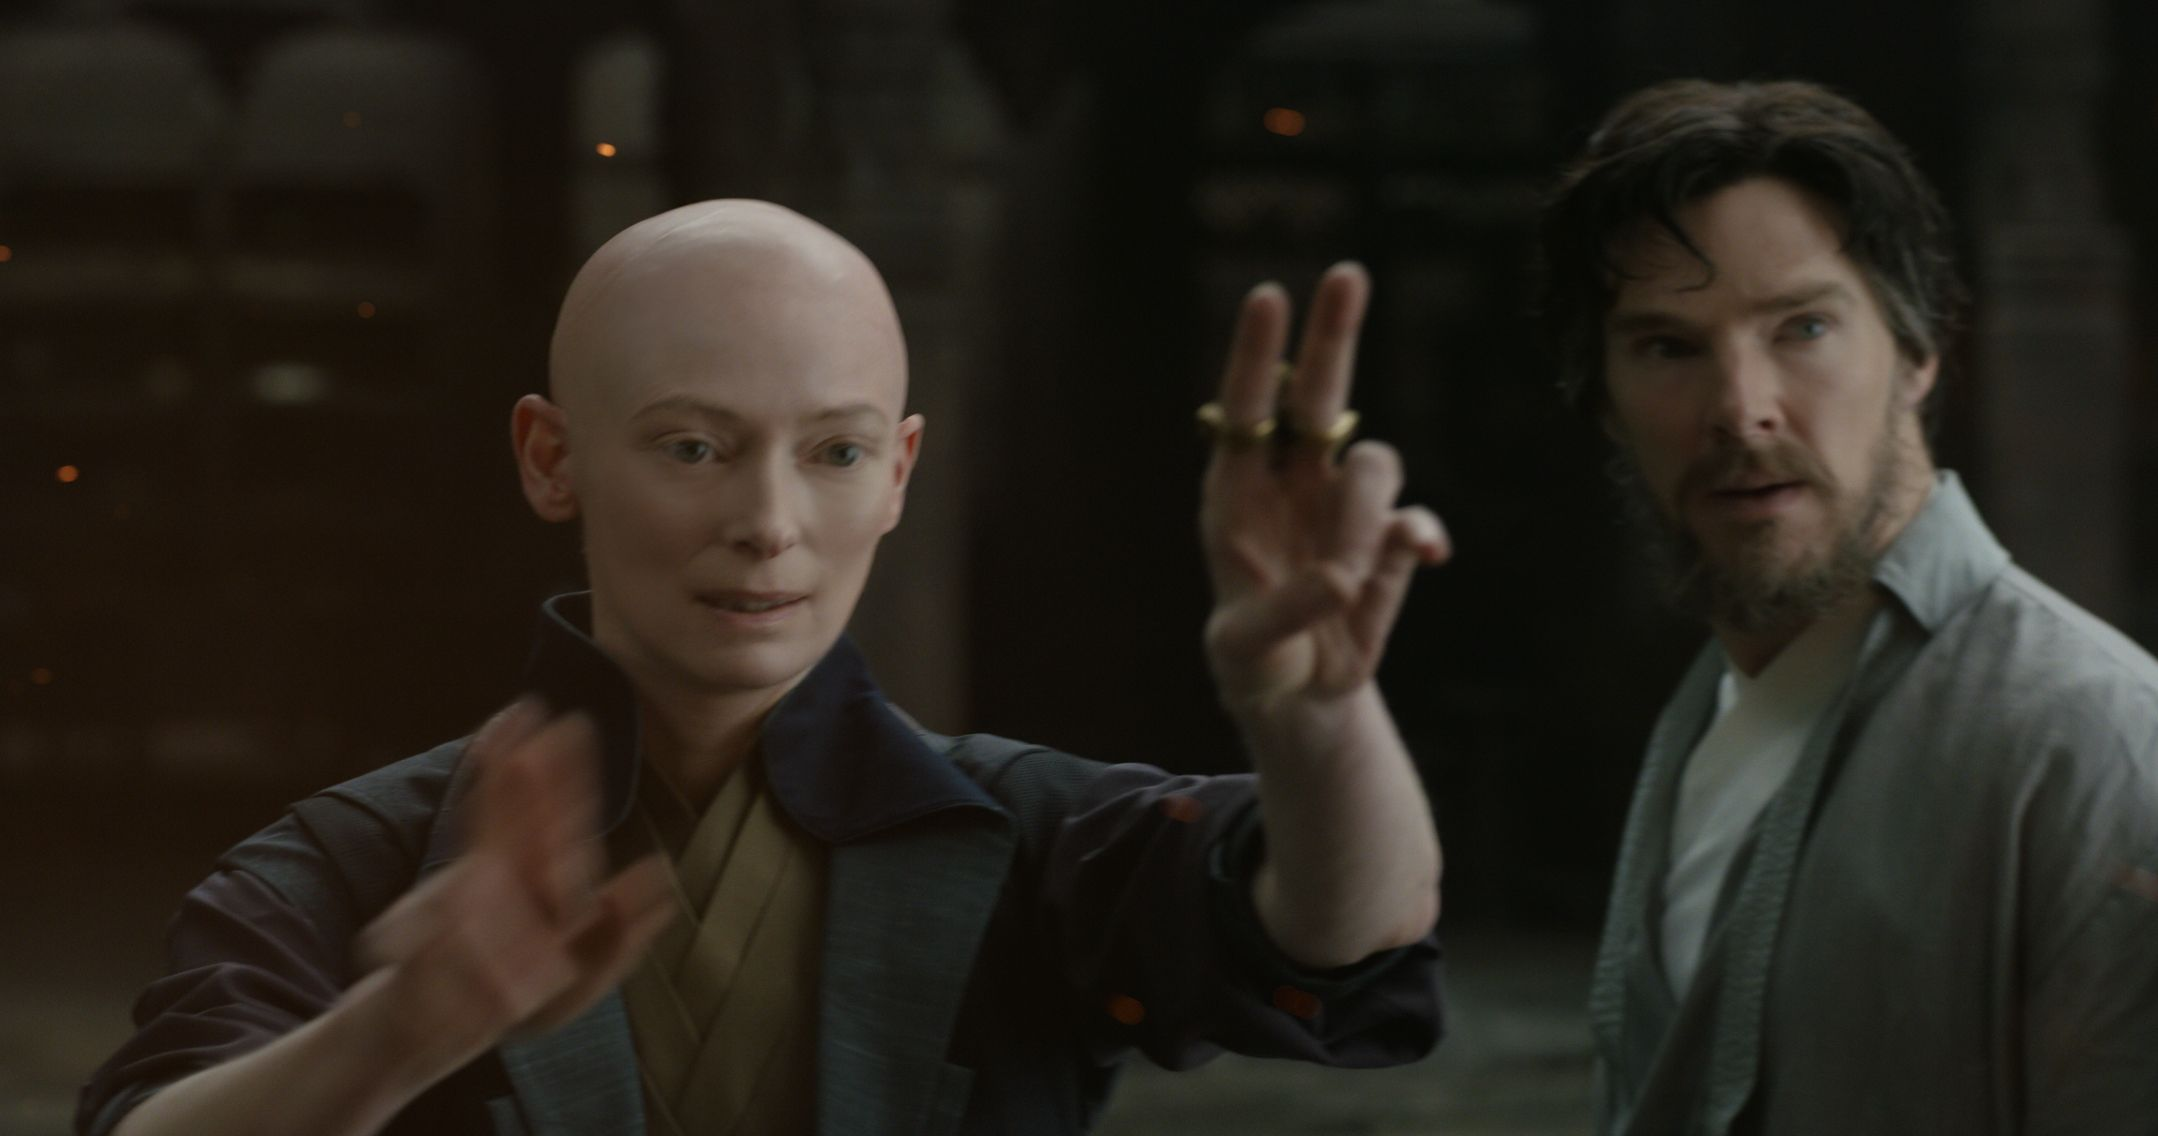 Tilda Swinton Ancient One Casting Was a Mistake, Admits Marvel's Kevin Feige